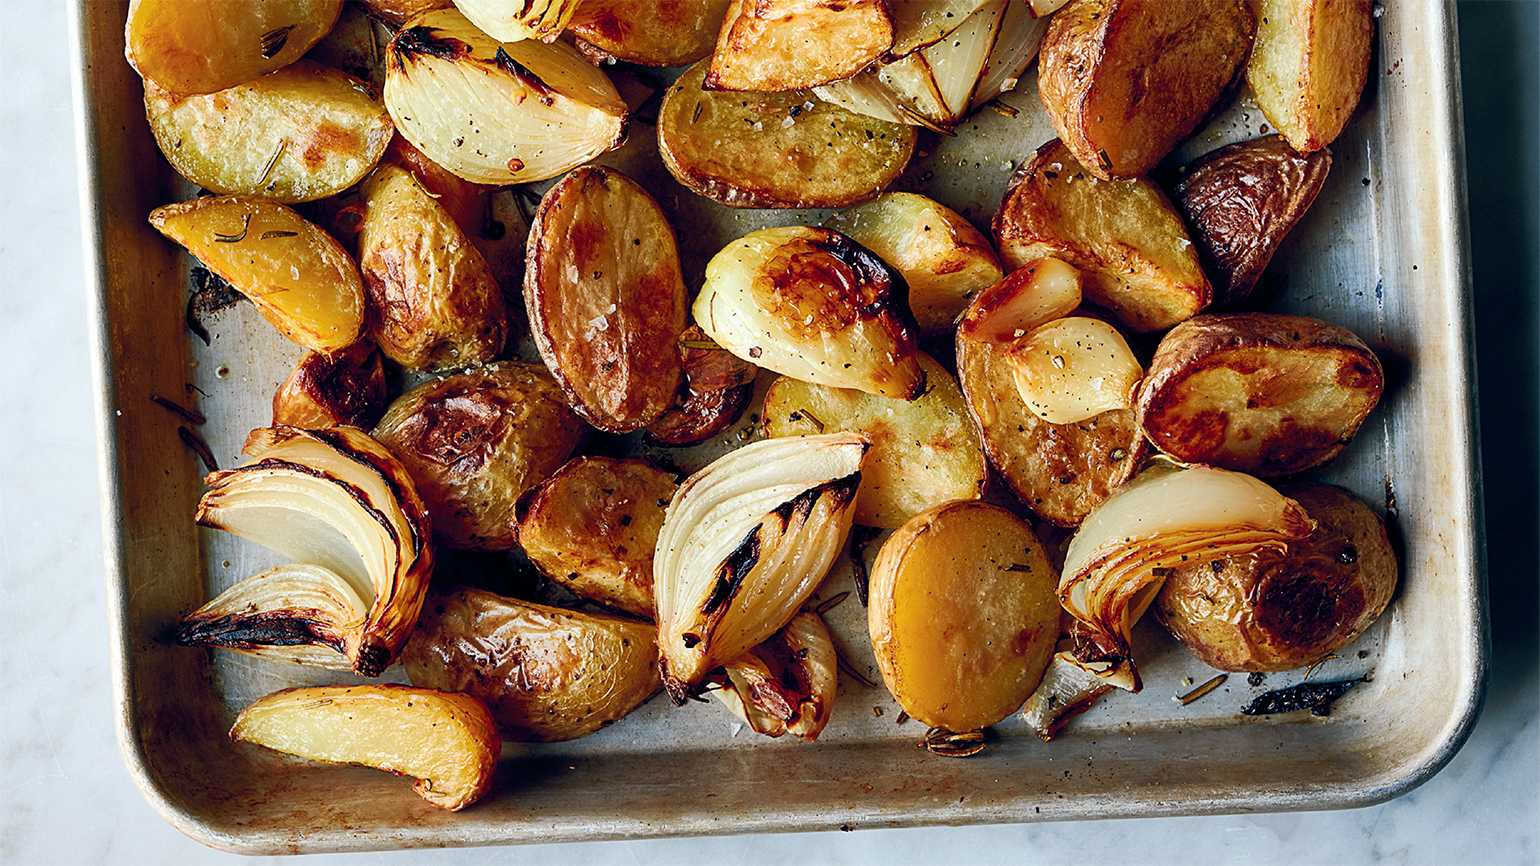 Roasted Potatoes with Onions and Rosemary; photograph by David Malosh